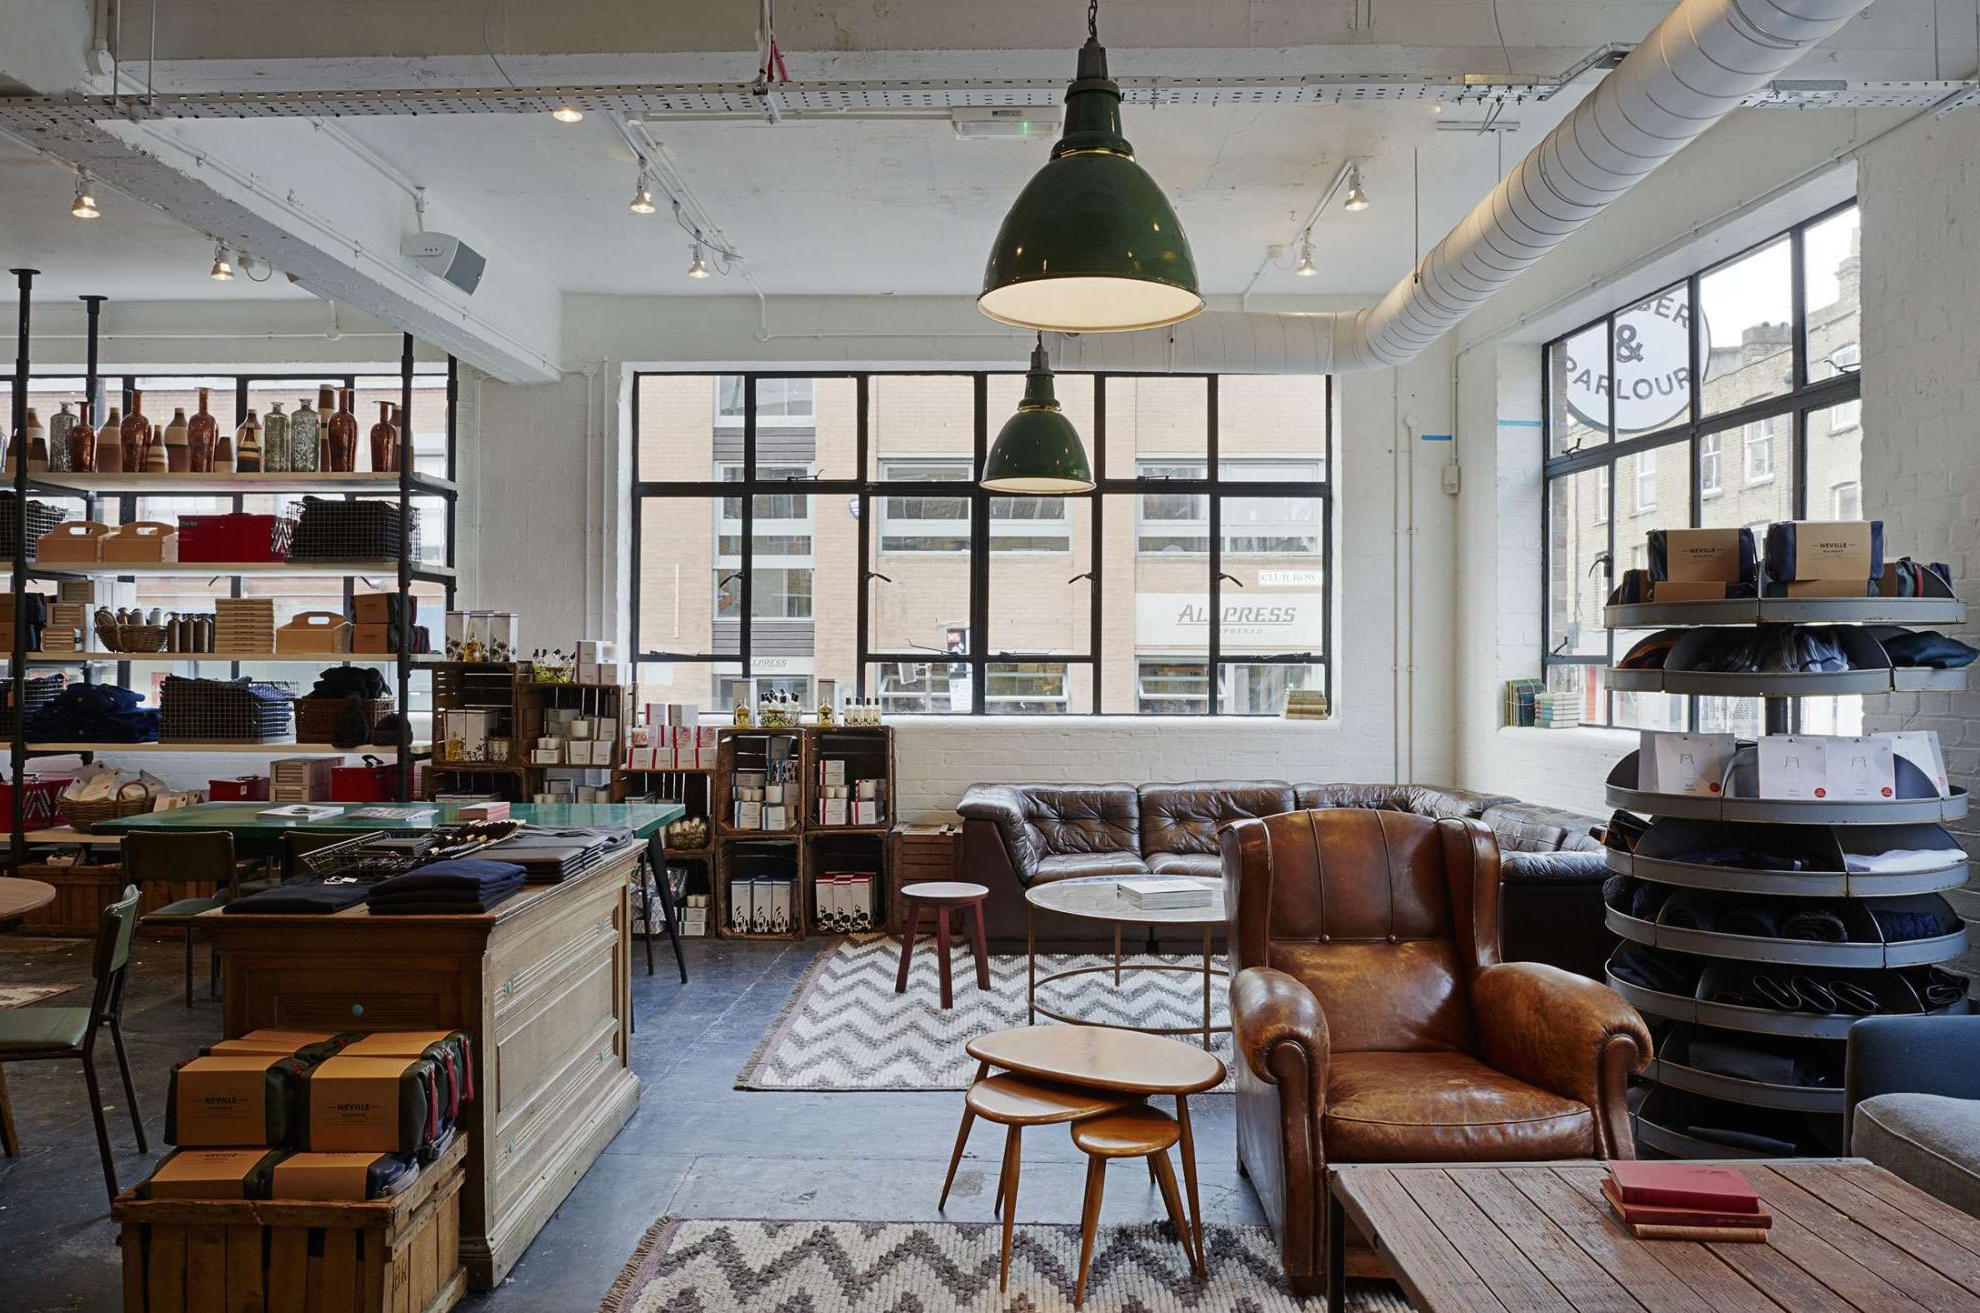 The Best Cafes to Work From in London